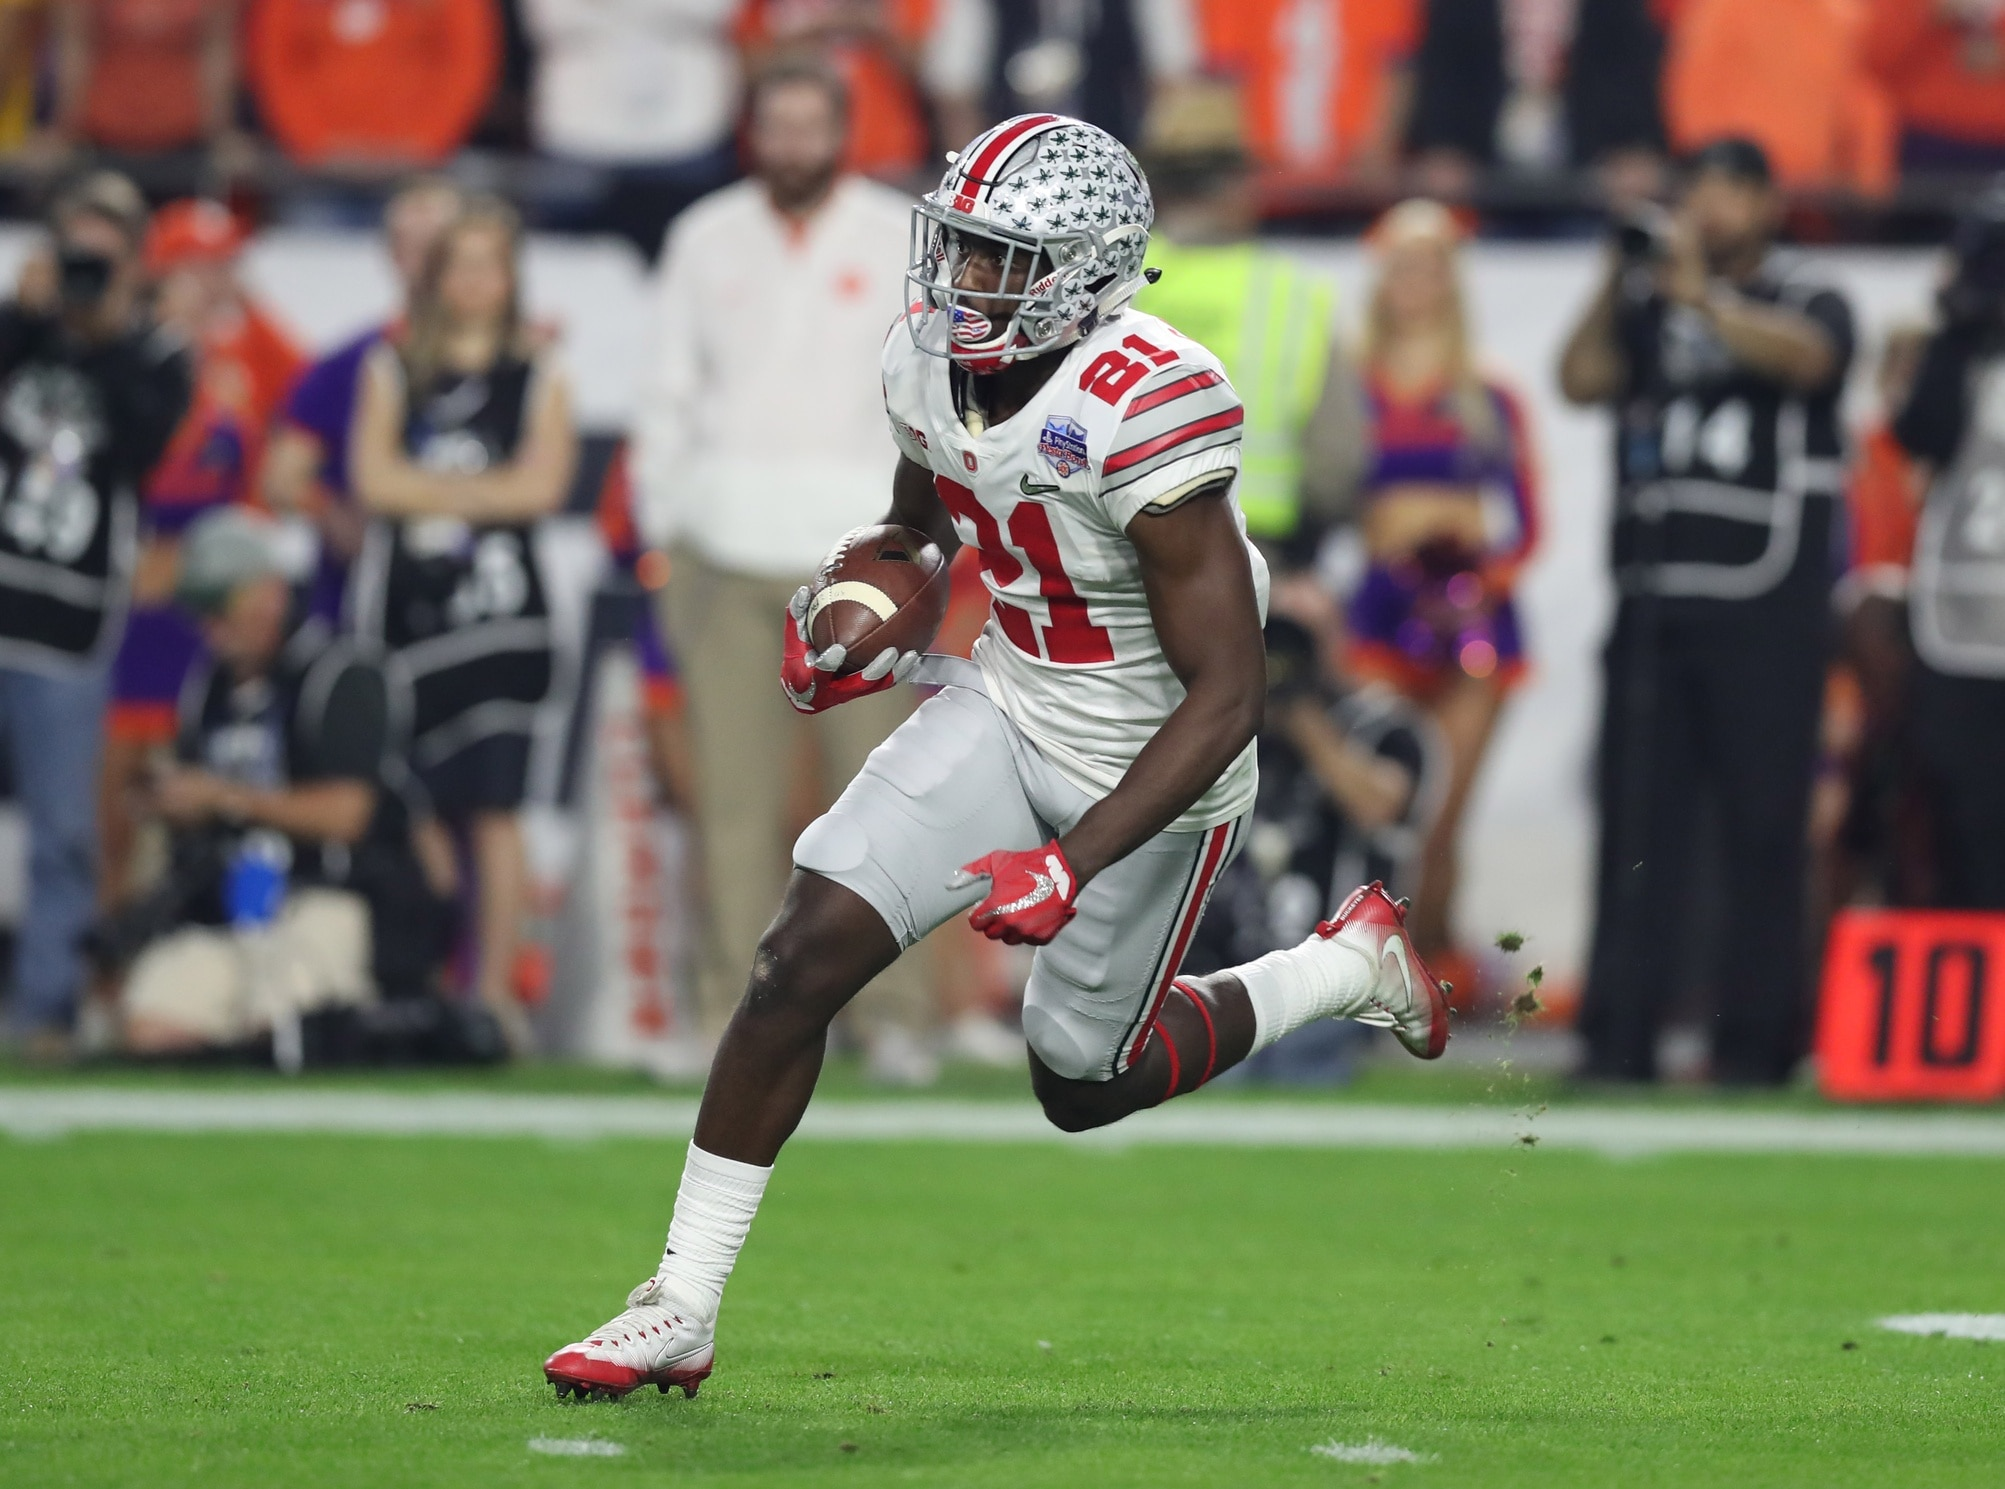 Do the Ohio State Buckeyes have the fastest team in college football?